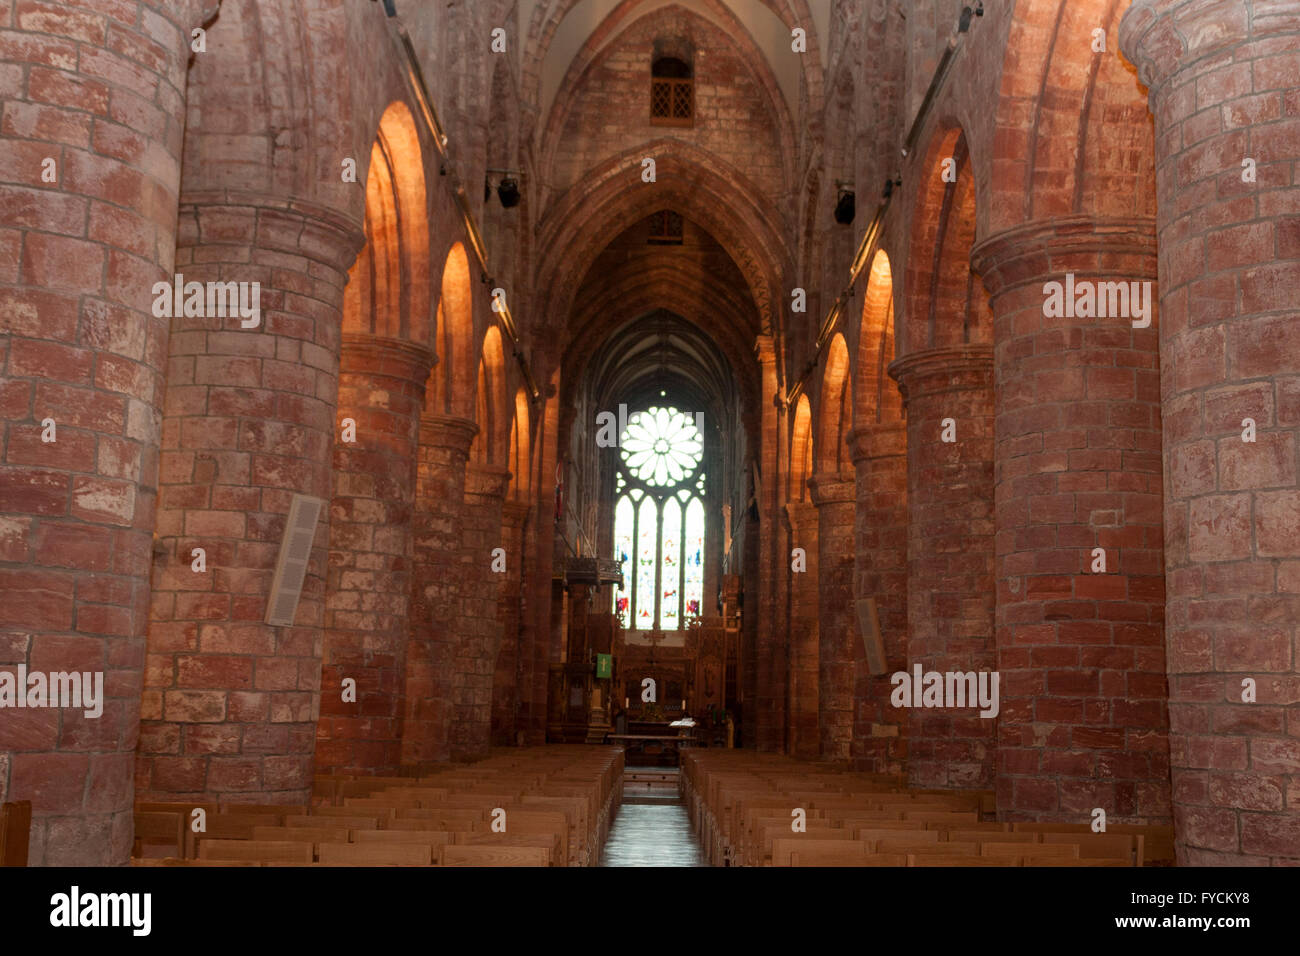 An image of St Magnus Cathedral inside - Stock Image